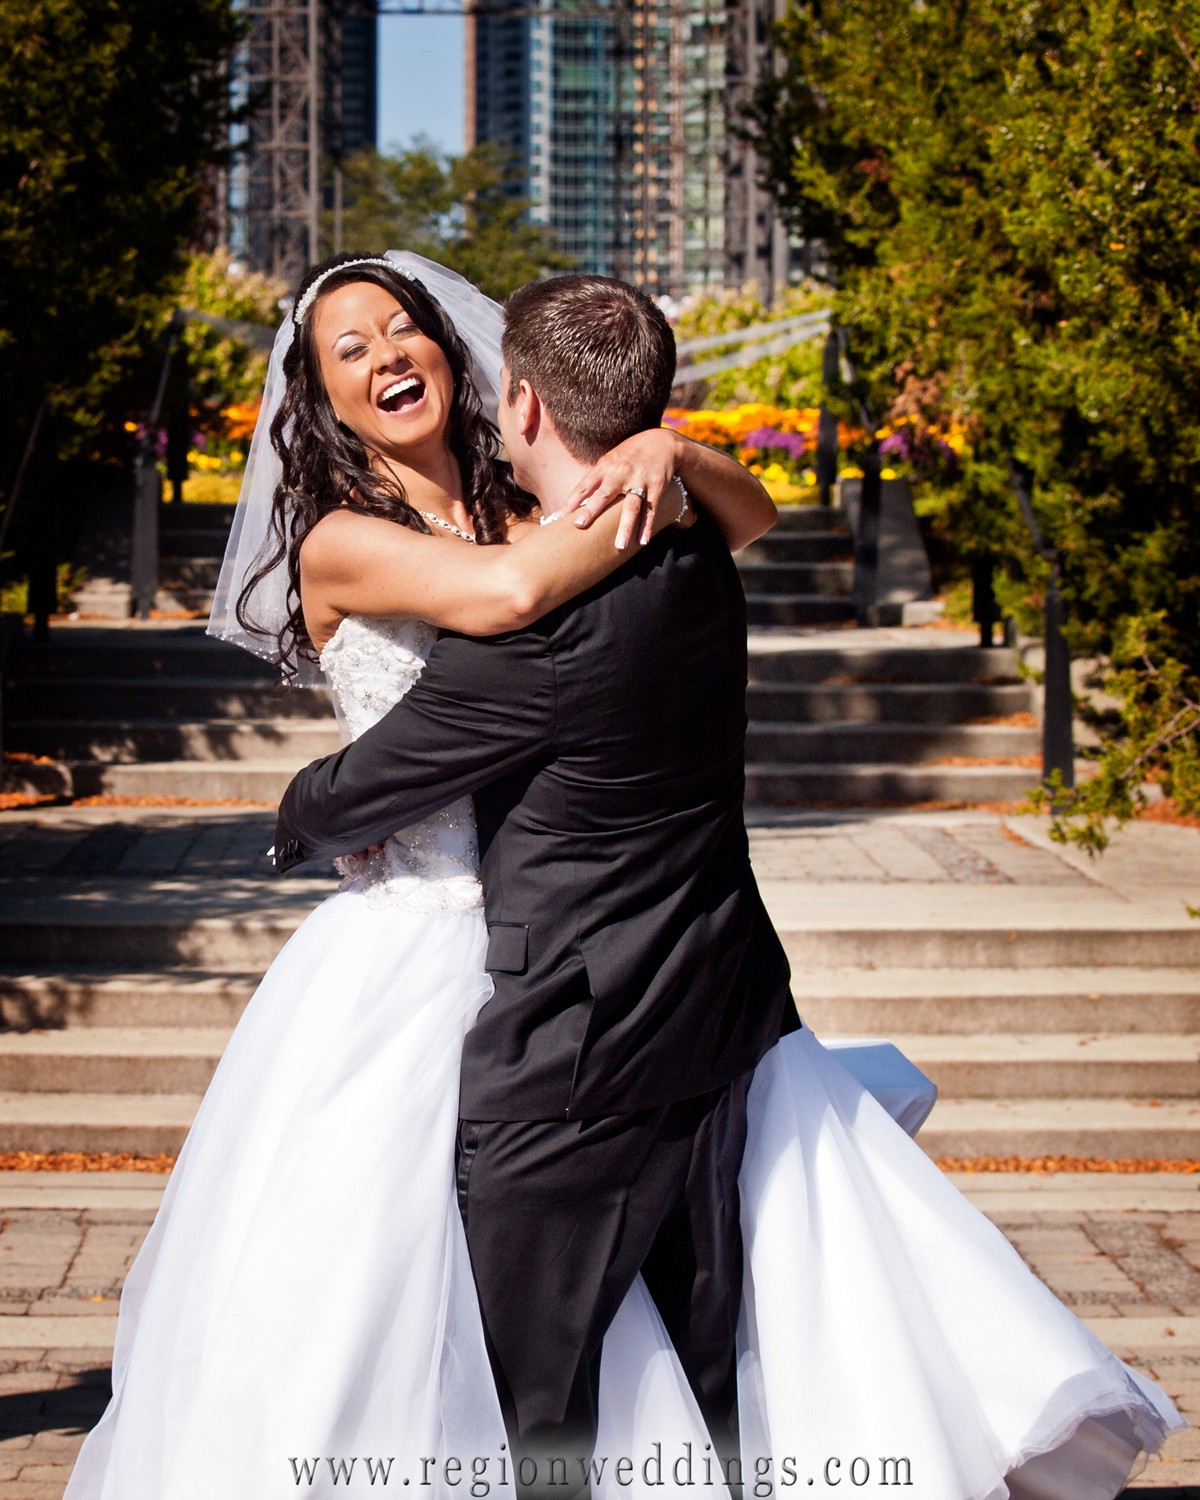 The newly married couple celebrates after becoming man and wife at an outdoor wedding in downtown Chicago.